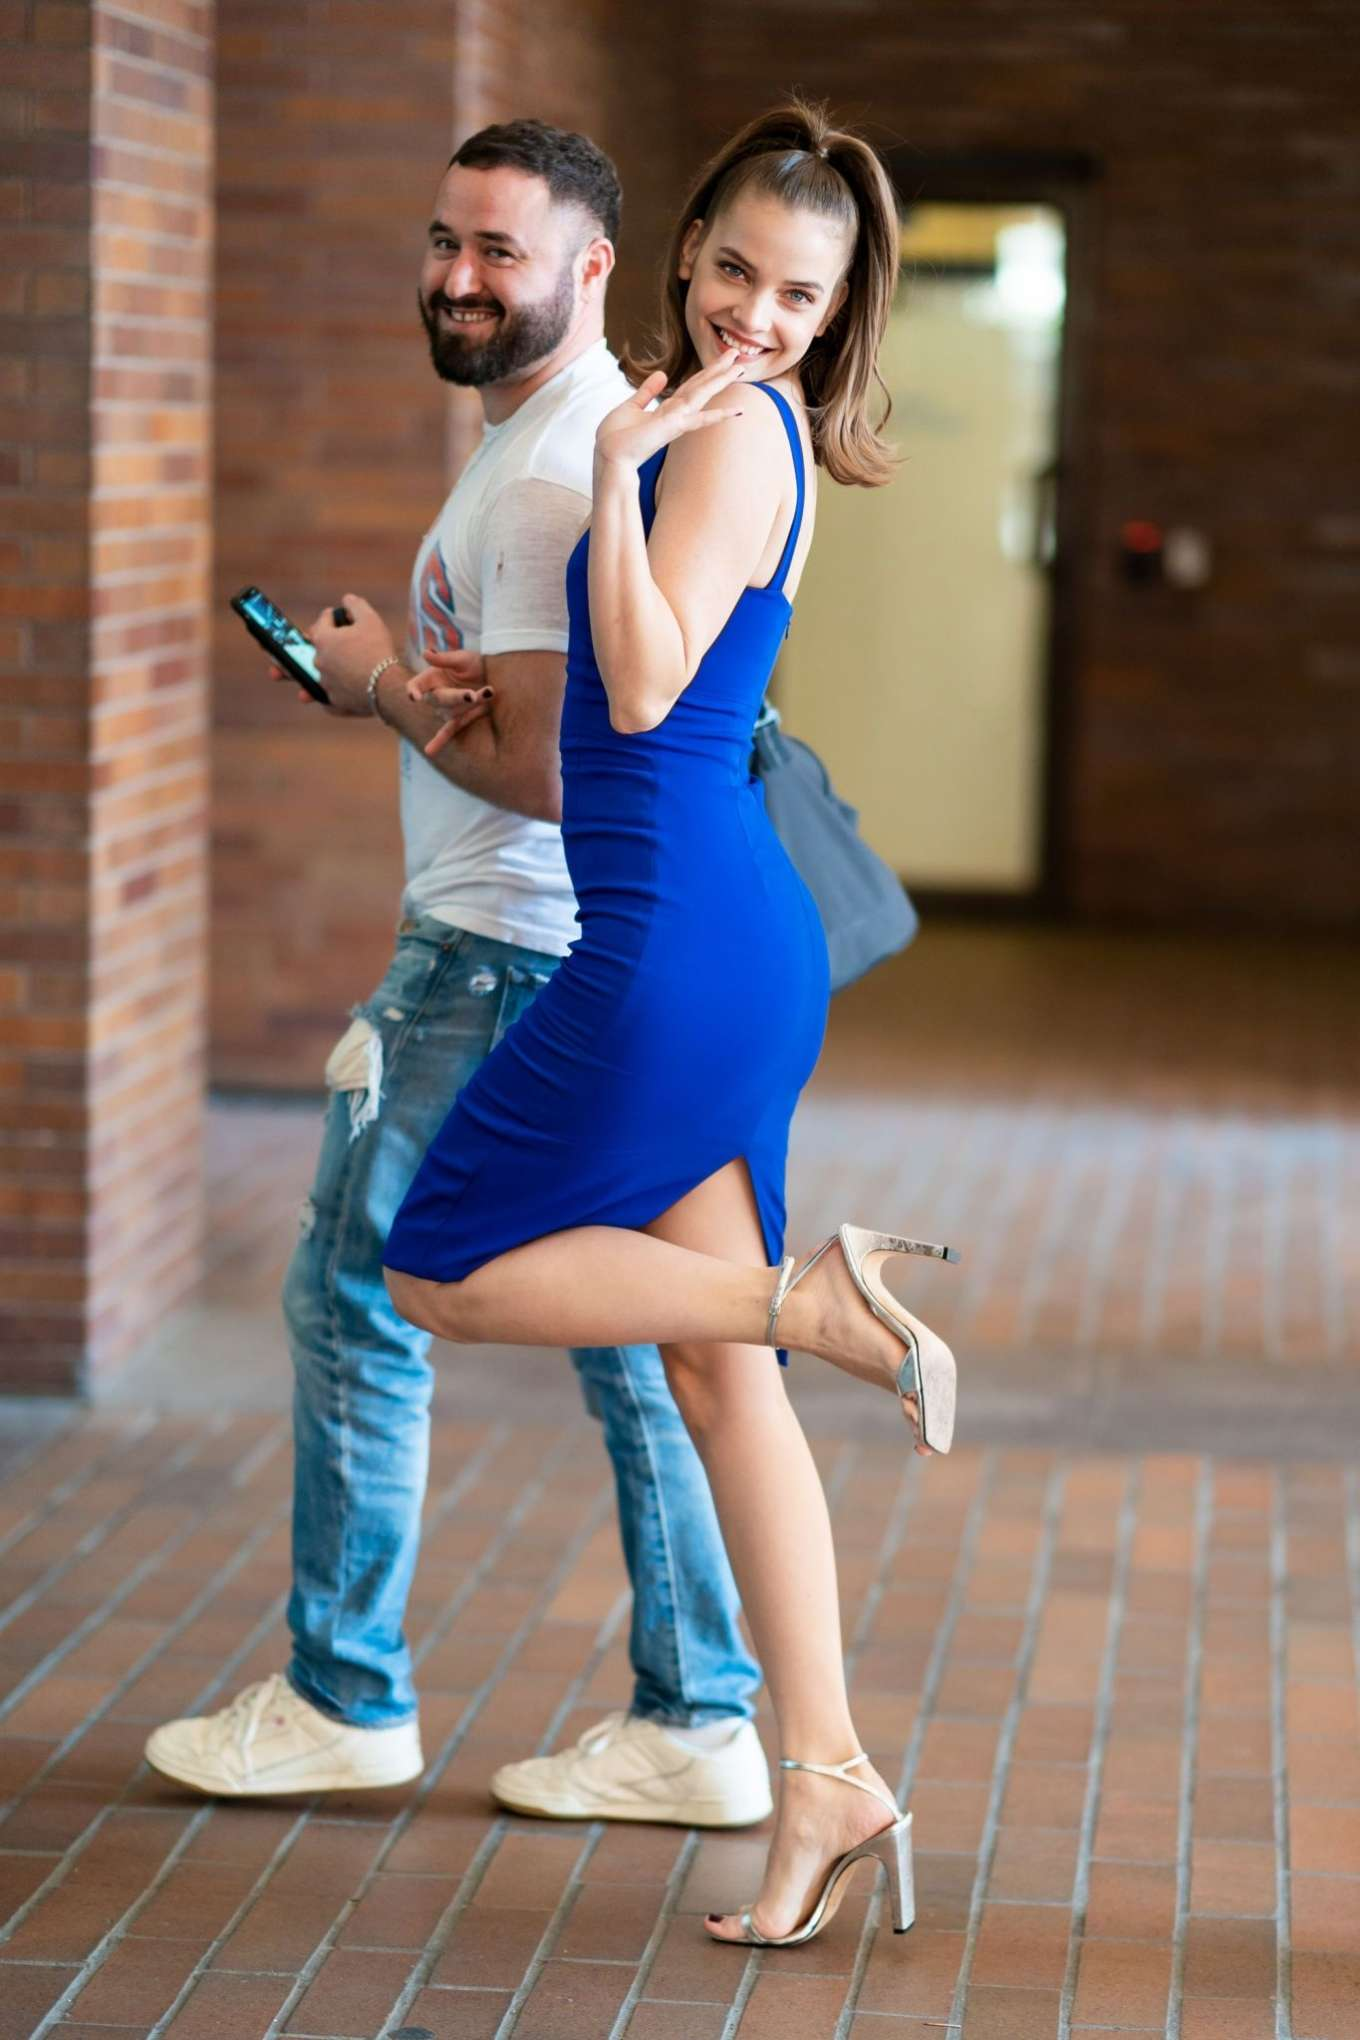 Barbara Palvin in Blue Dress in the Financial District in NYC